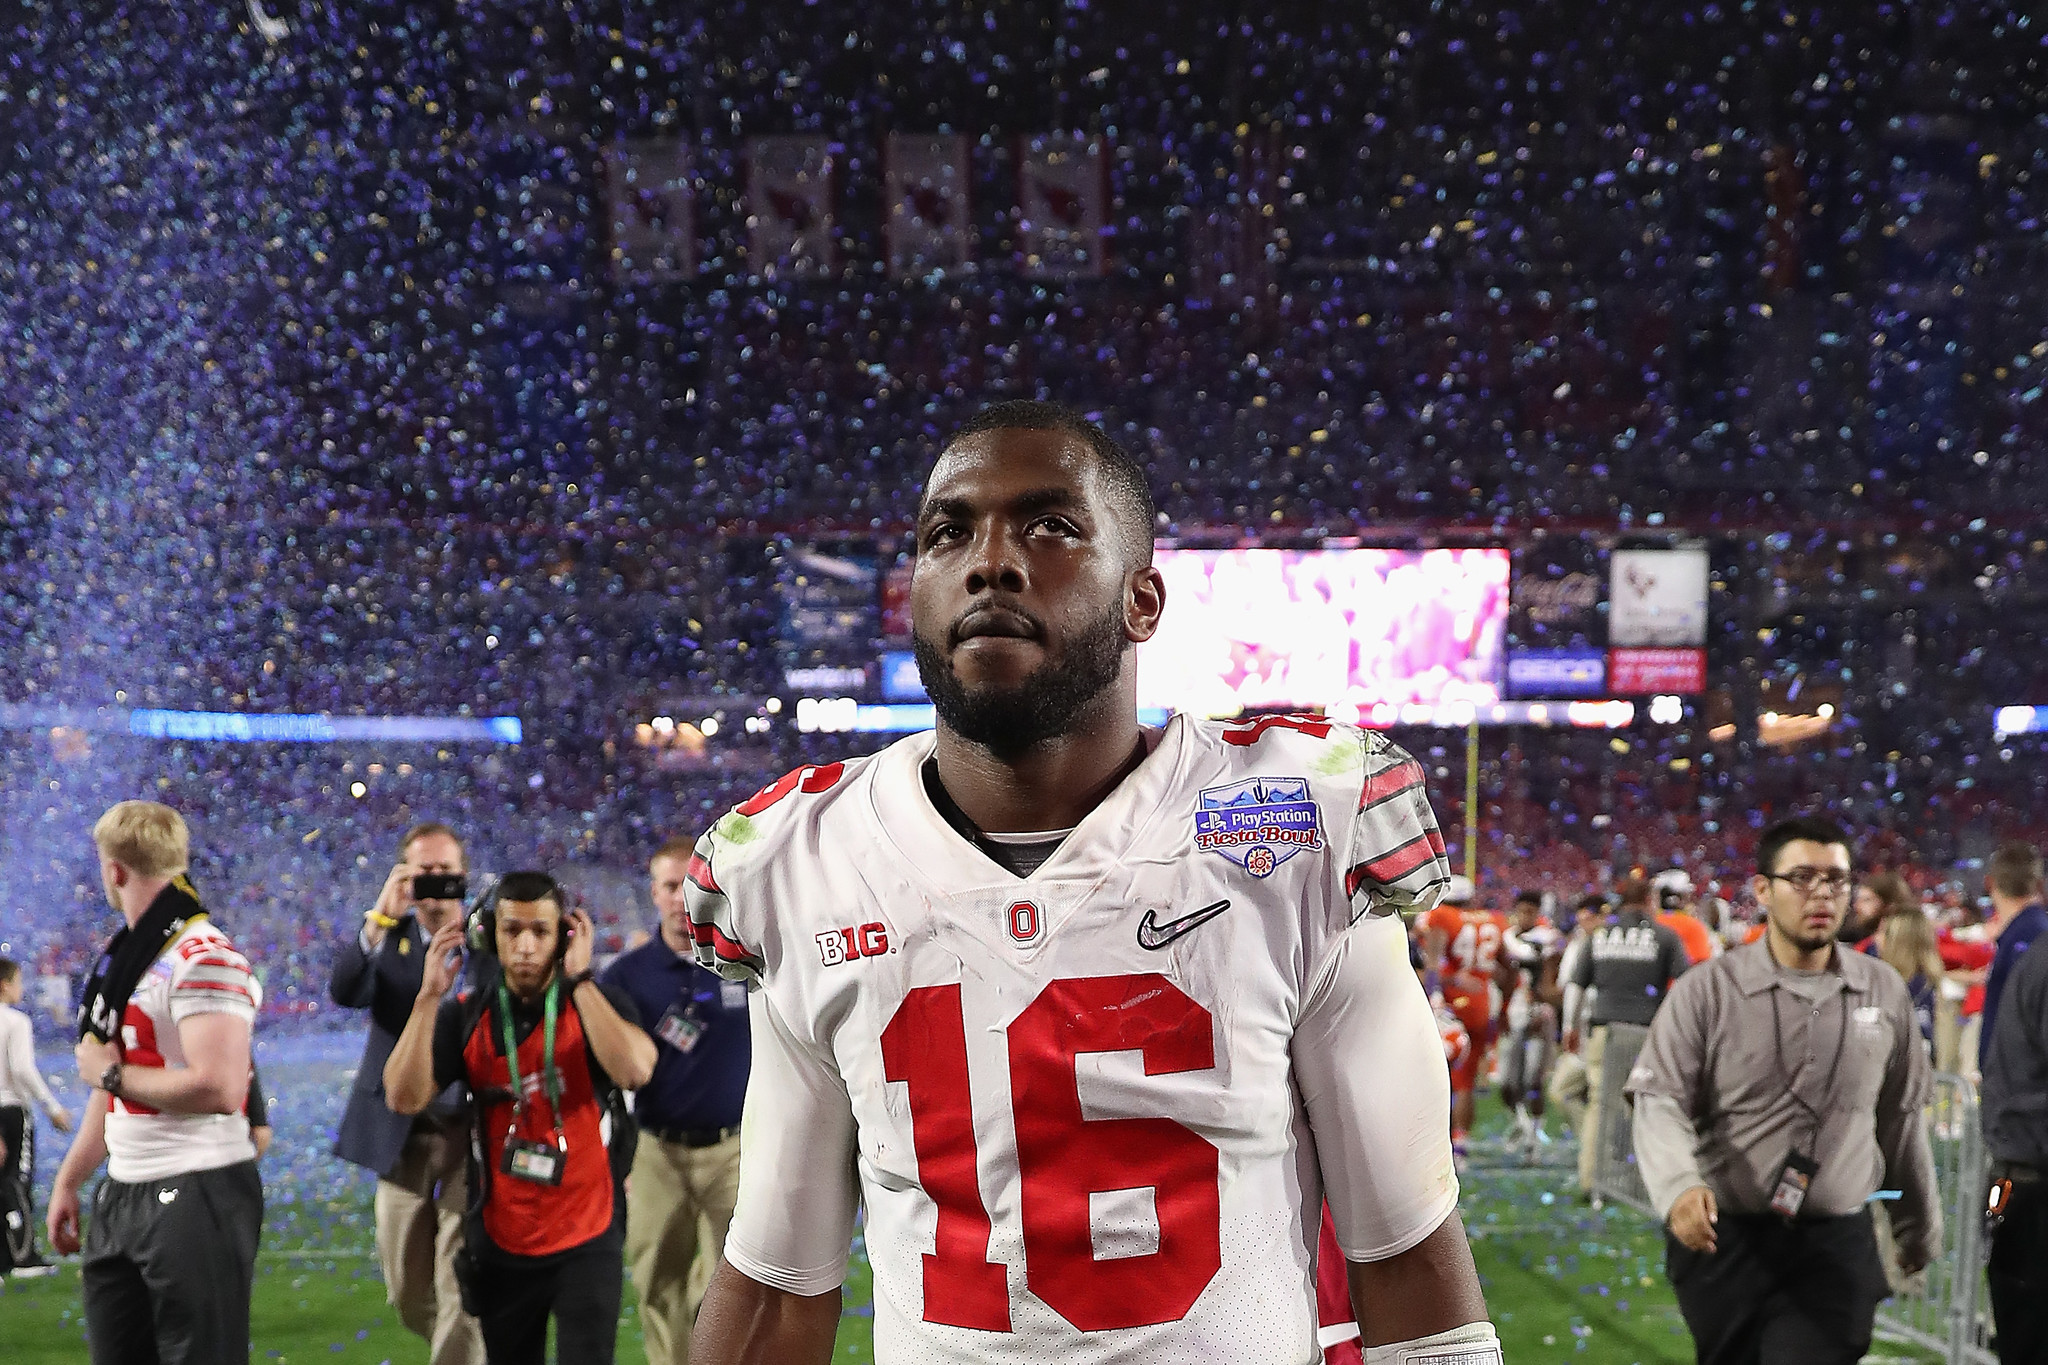 Ohio State Makes Wrong Kind Of History In Blowout Loss To Clemson